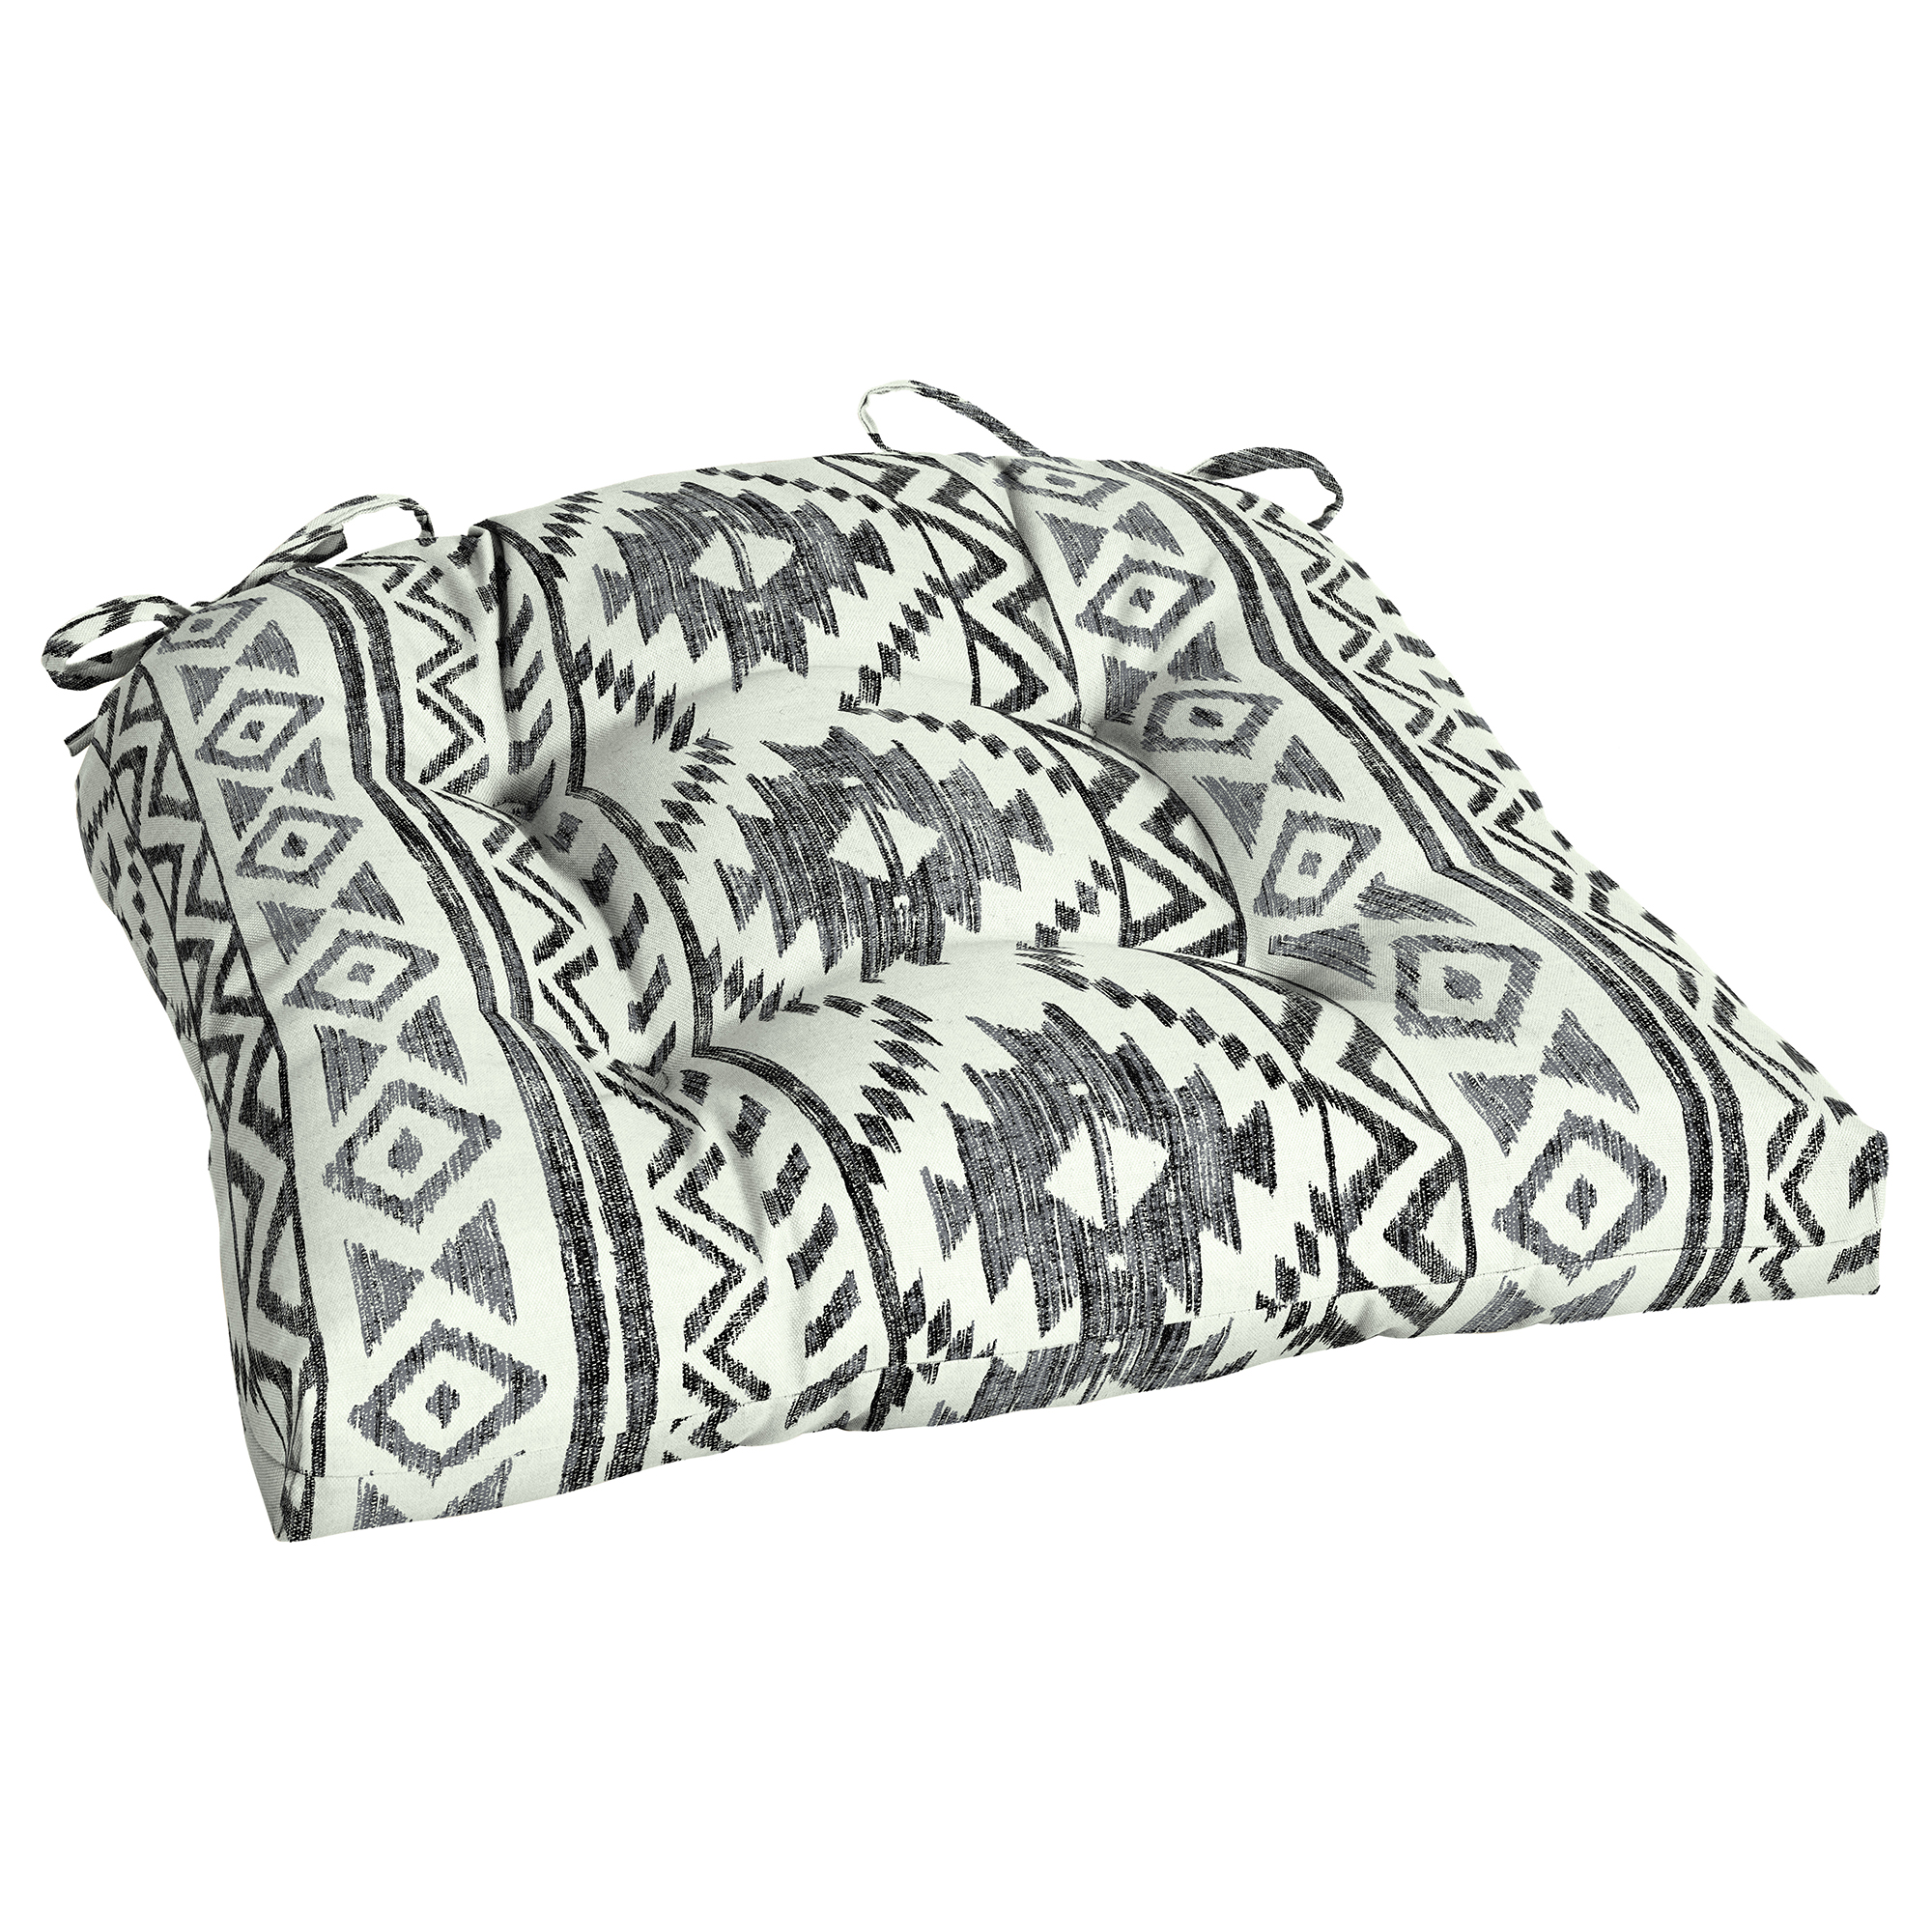 Mainstays Black Global Stripe Outdoor 18 x 20 in. Wicker Seat Cushion